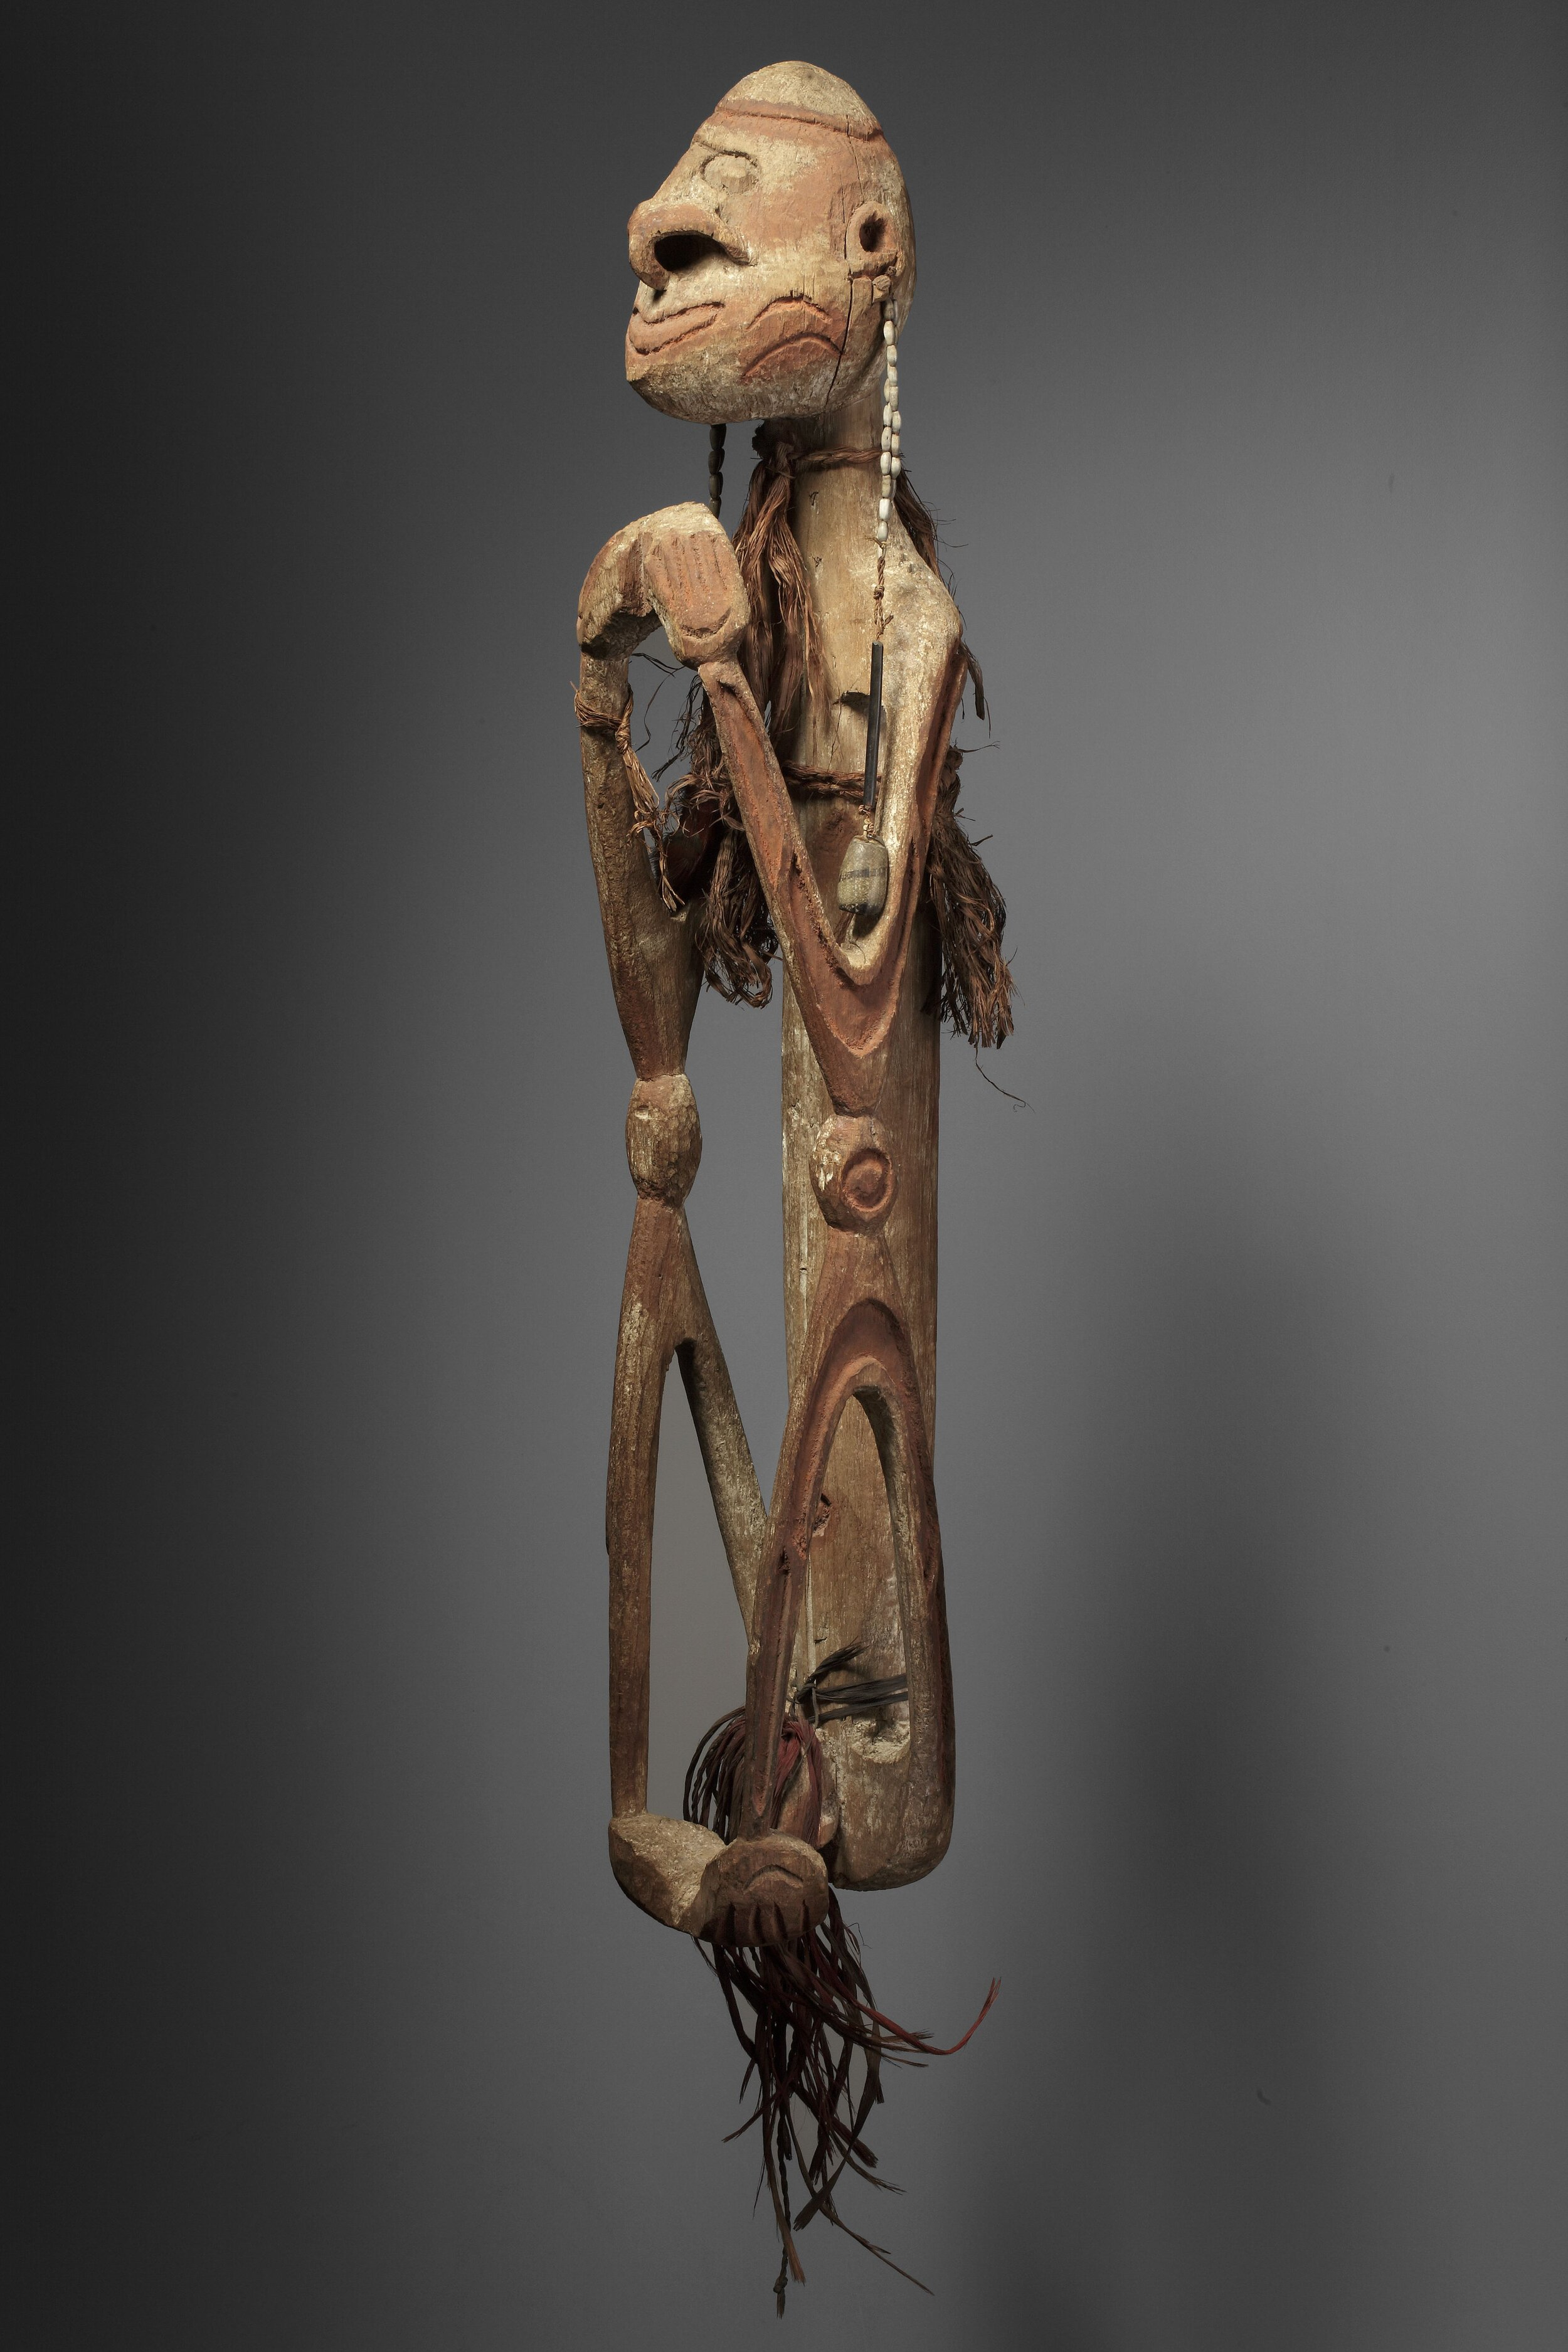 """Ancestor figure D, accompanied by a document typed by the collector indicating: """"Male figure. Hands clasped tightly under the chin, also with both feet. Arms and legs bent. H: 77 cm. Soft wood and light, originally fully painted with lime. Red incised lines. Purchased at the MSC missionary house in 1950. Collected by Father Viegen ... Noordwest River. See P. Viegen in the  Annals  1912–1913."""" Private collection. Photo: Jan van Esch"""